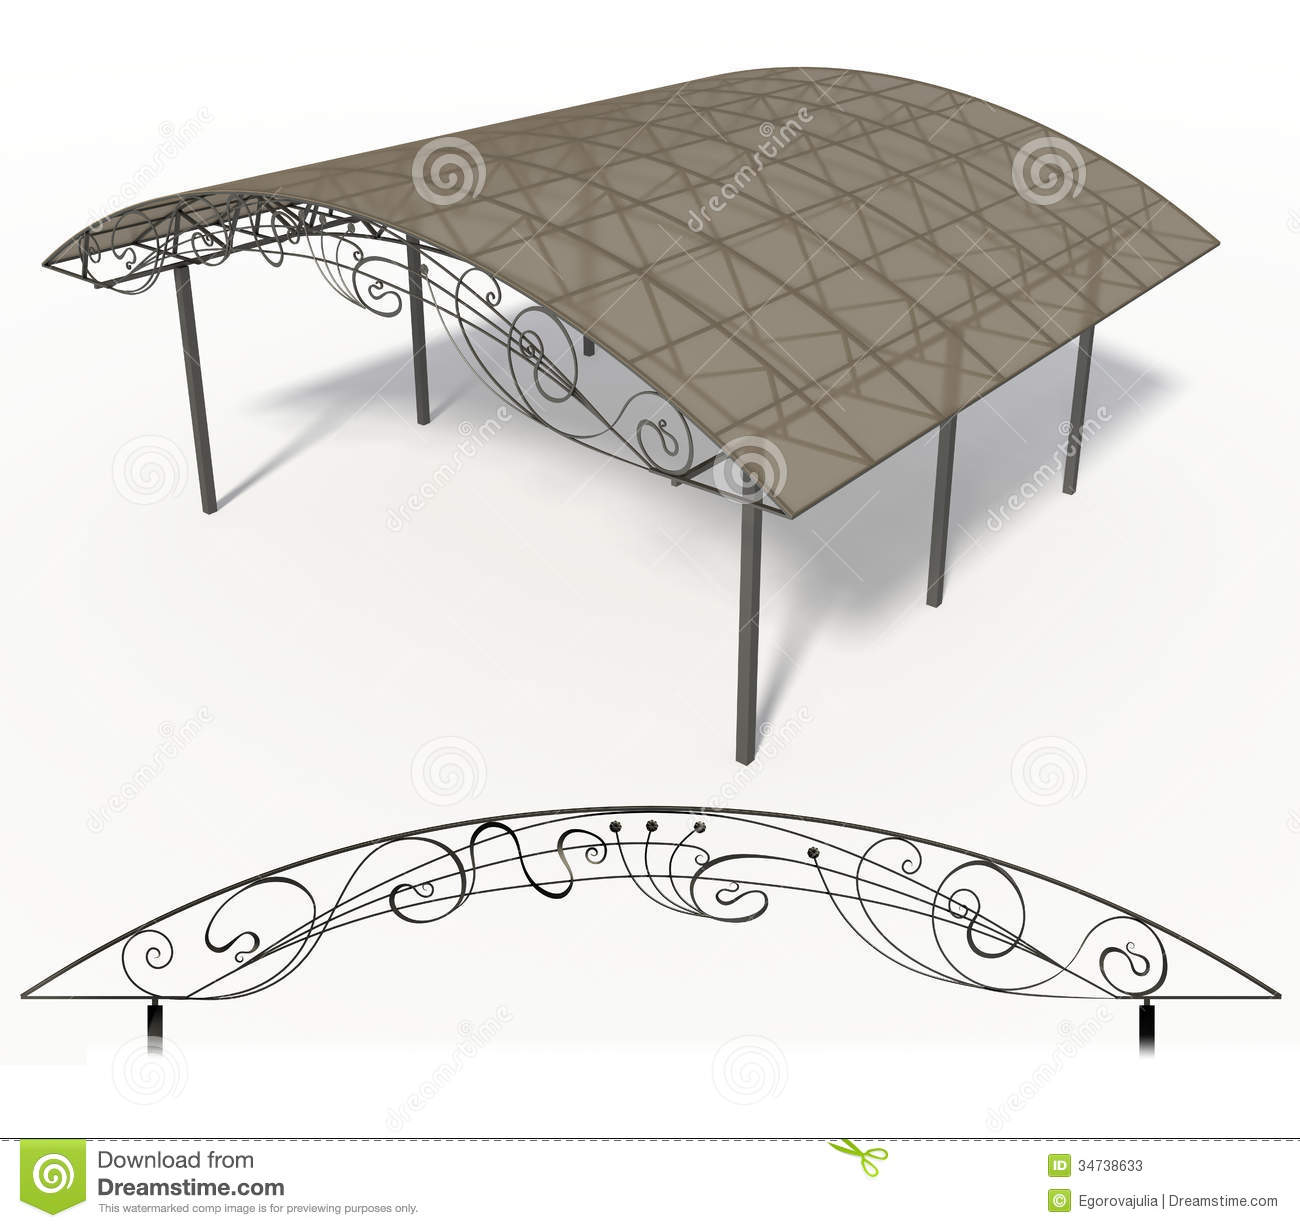 Wrought iron canopy  sc 1 st  Dreamstime.com & Wrought iron canopy stock illustration. Image of illustration ...